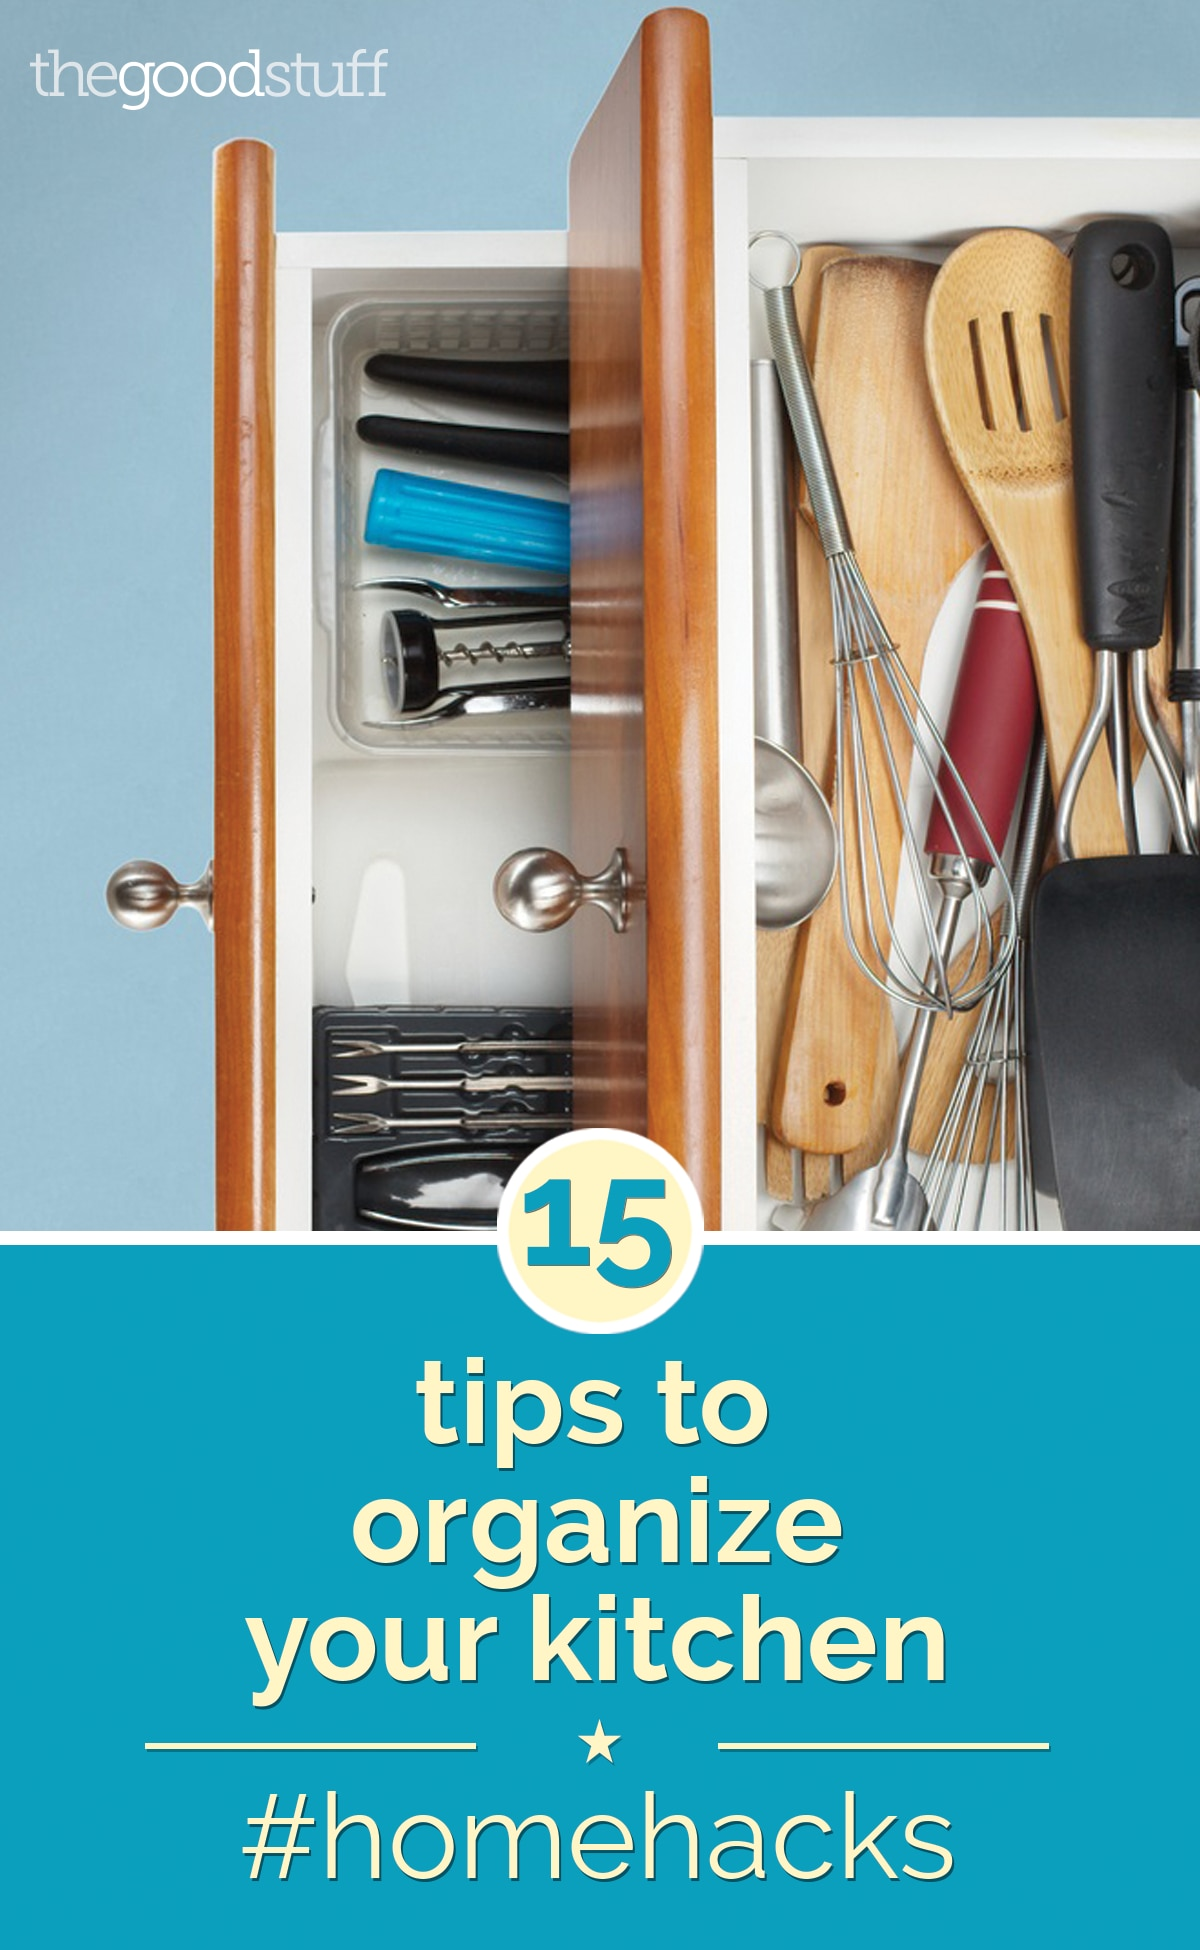 Home hacks 15 tips to organize your kitchen thegoodstuff for Household hacks